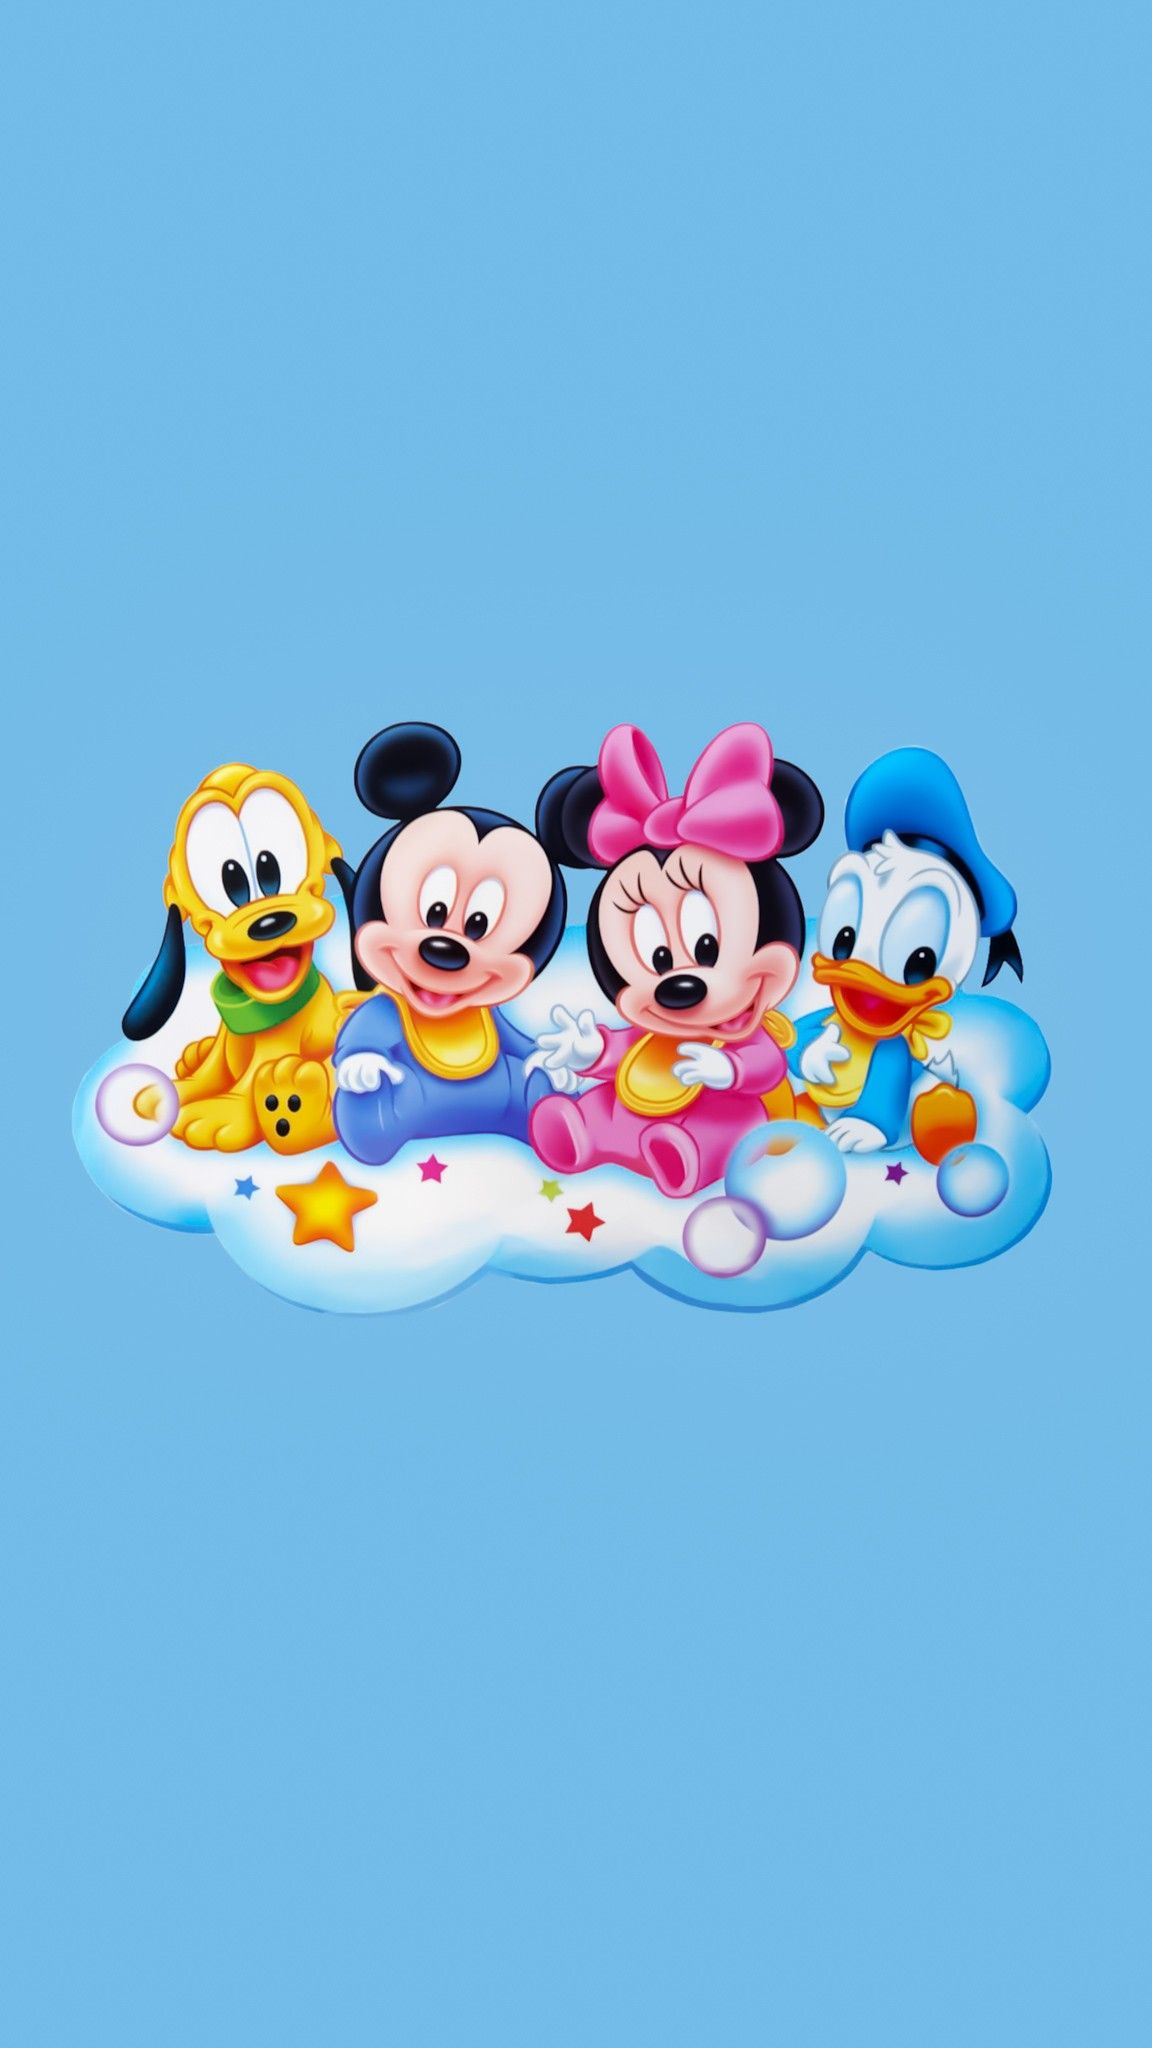 Pin By Aekkalisa On Mickey And Friends Bg Disney Wallpaper Disney Characters Wallpaper Wallpaper Iphone Disney